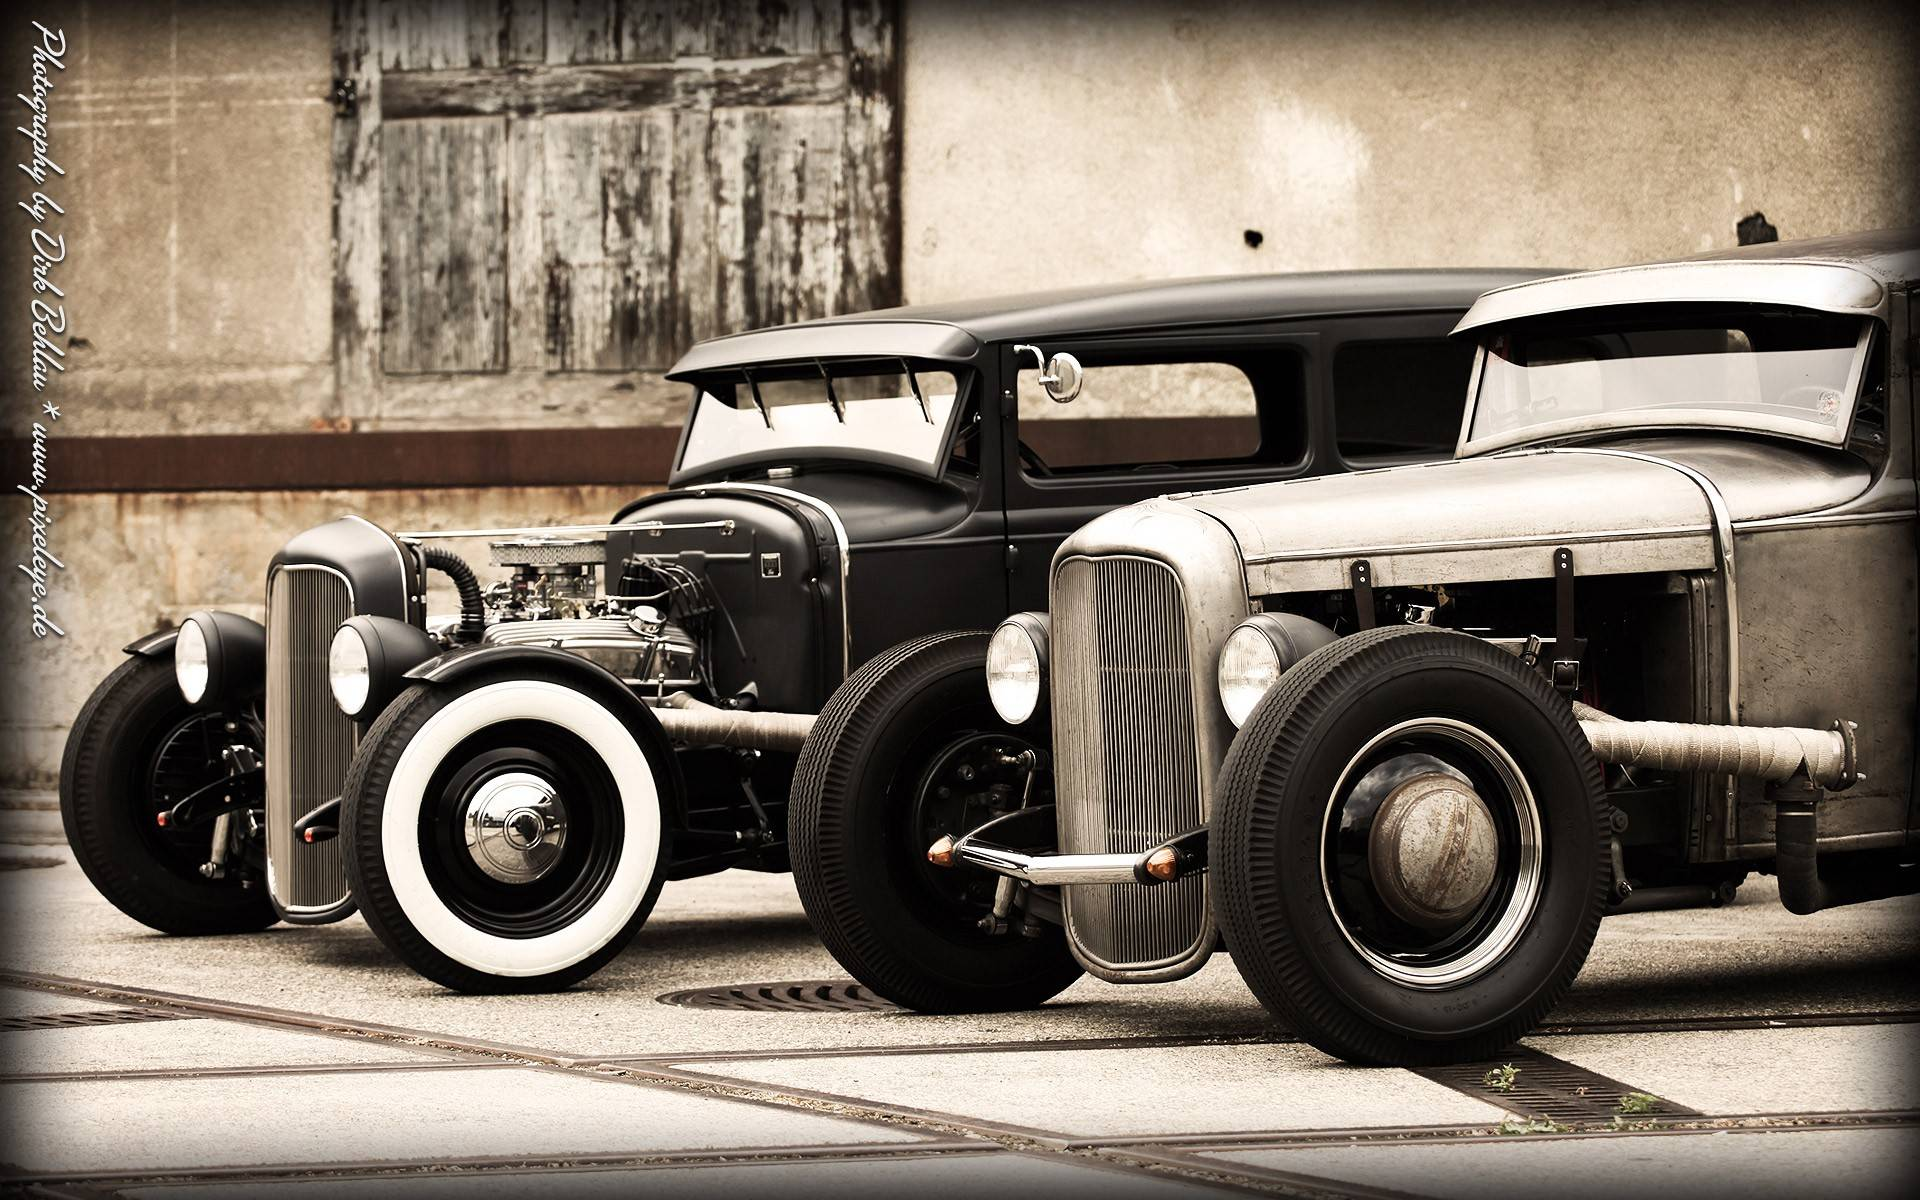 Hot Rod Wallpapers A Link to the Past hot 1920 1200 wallpaper 1920x1200